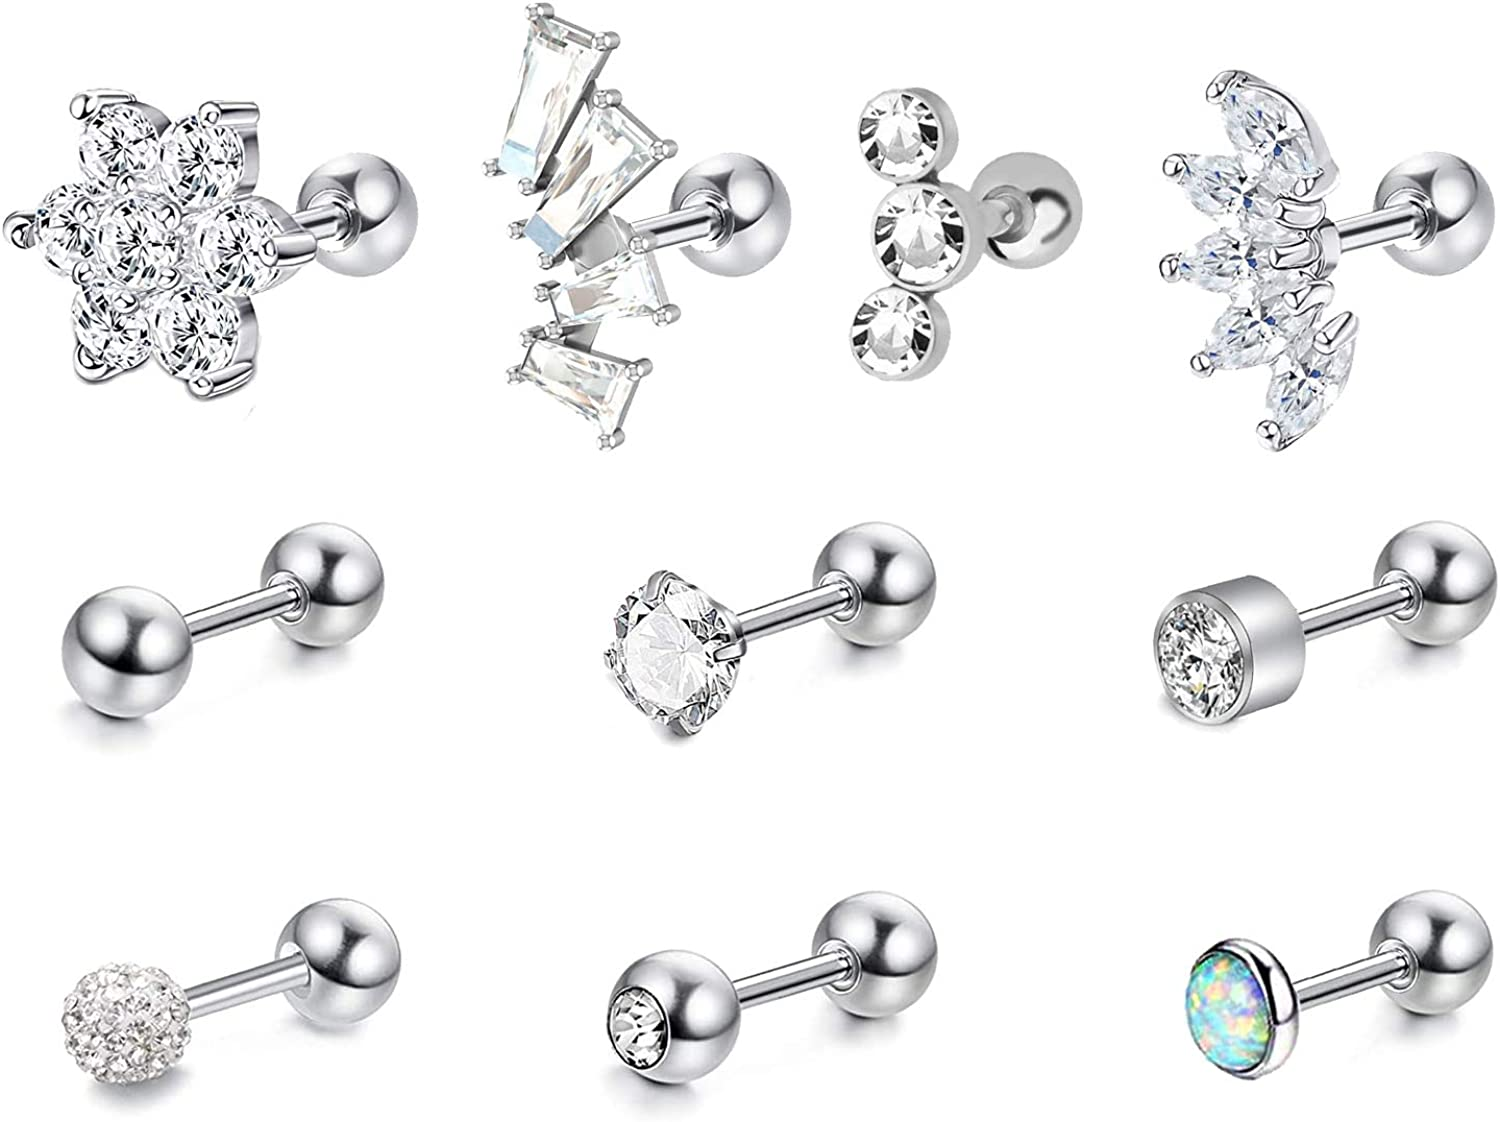 HQNUO 16G Stainless Steel Inlay Cubic Zirconia Stud Earrings Moon Shape Cartiliage Earring Tragus Helix Piercing